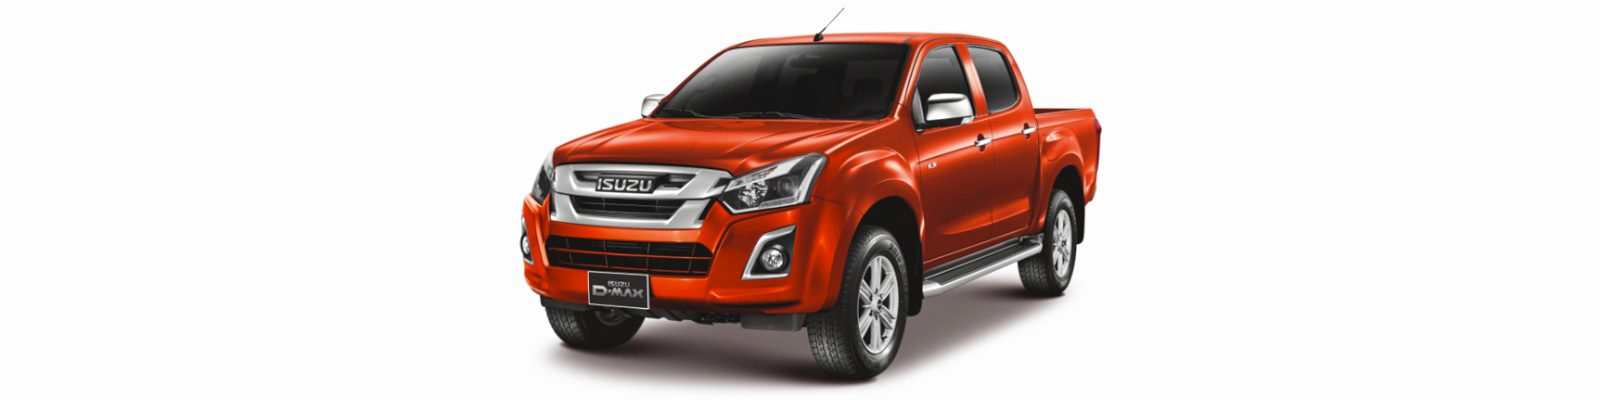 isuzu d max double cab accessories 2017 on 4x4 accessories tyres. Black Bedroom Furniture Sets. Home Design Ideas